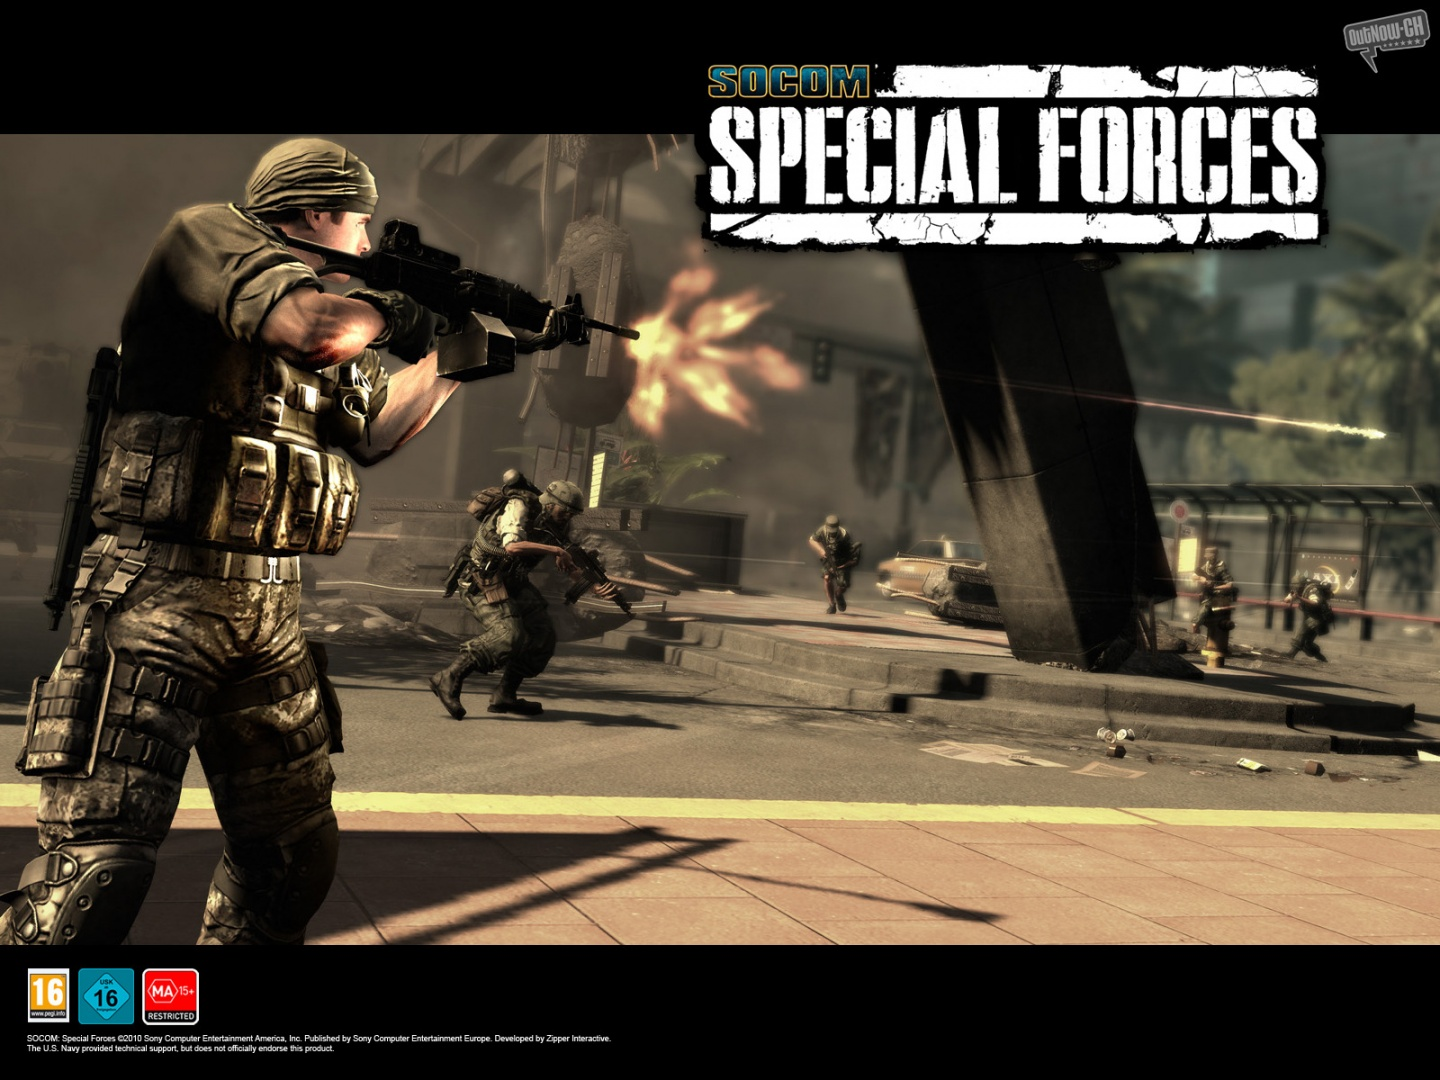 SOCOM Special Forces Wallpapers SOCOM Special Forces